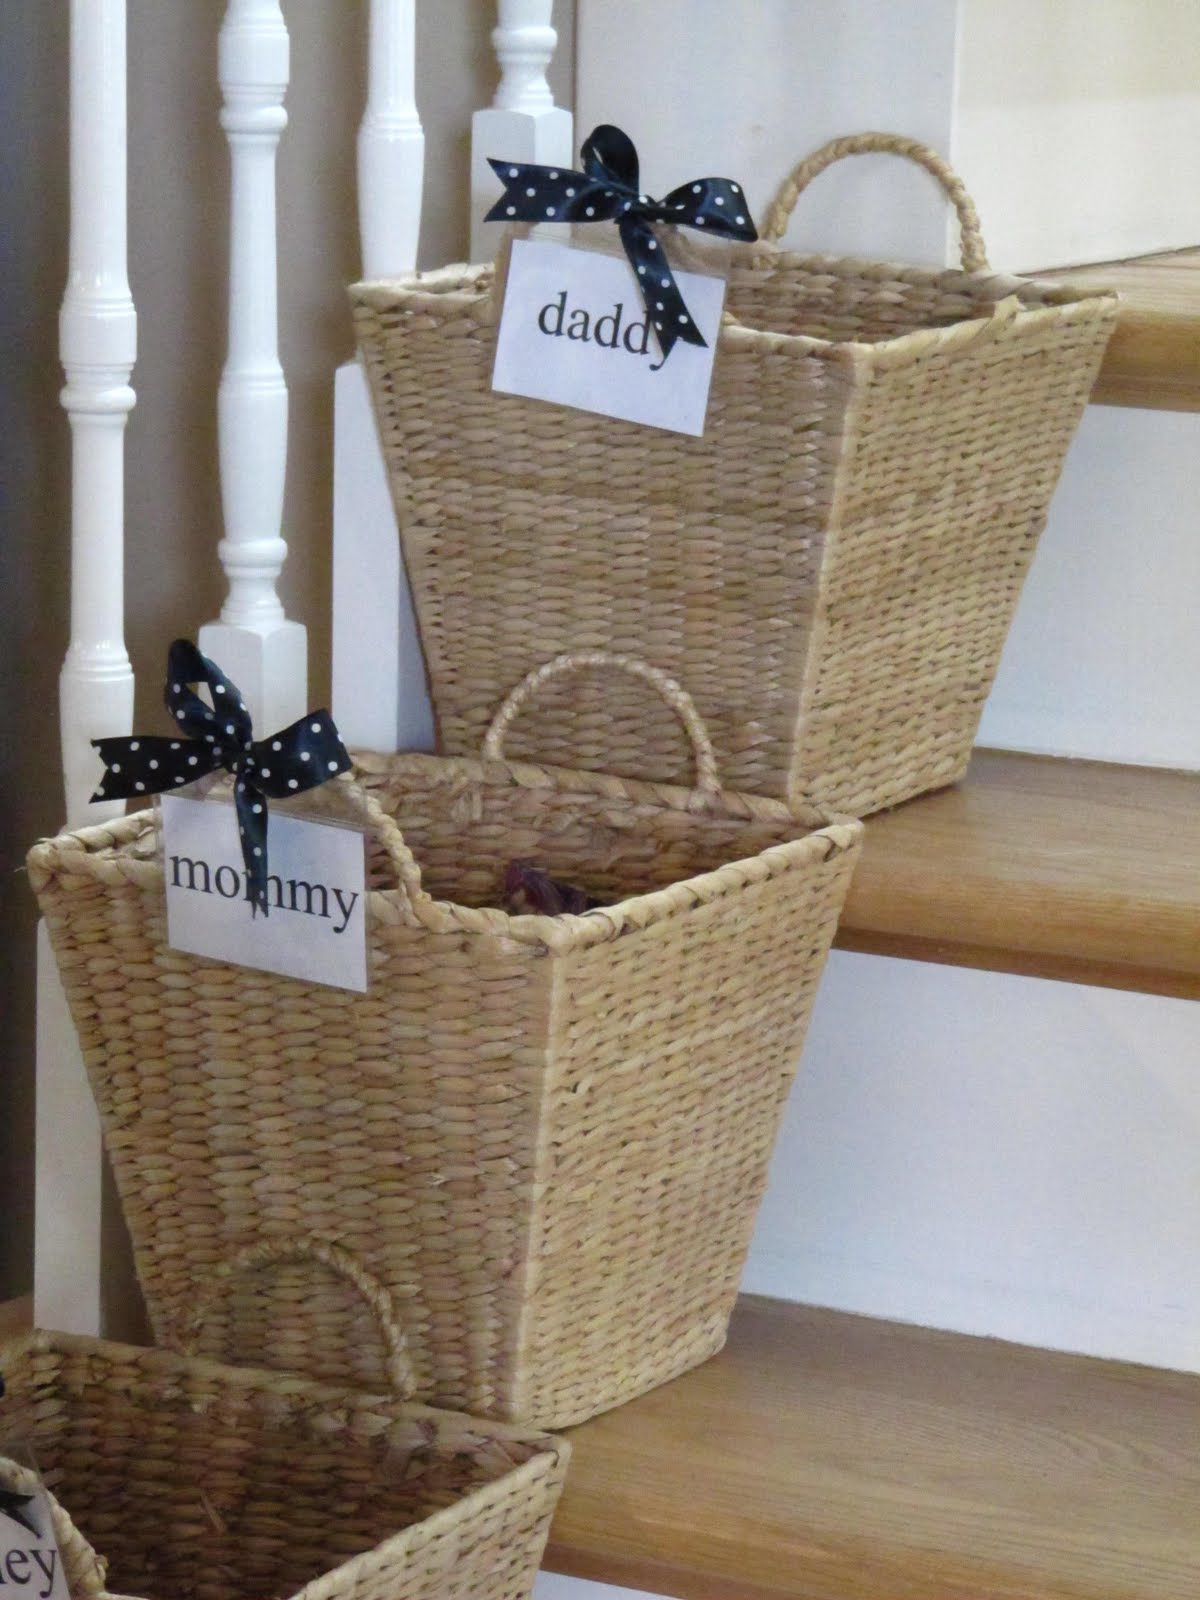 Ways to Organize with Baskets